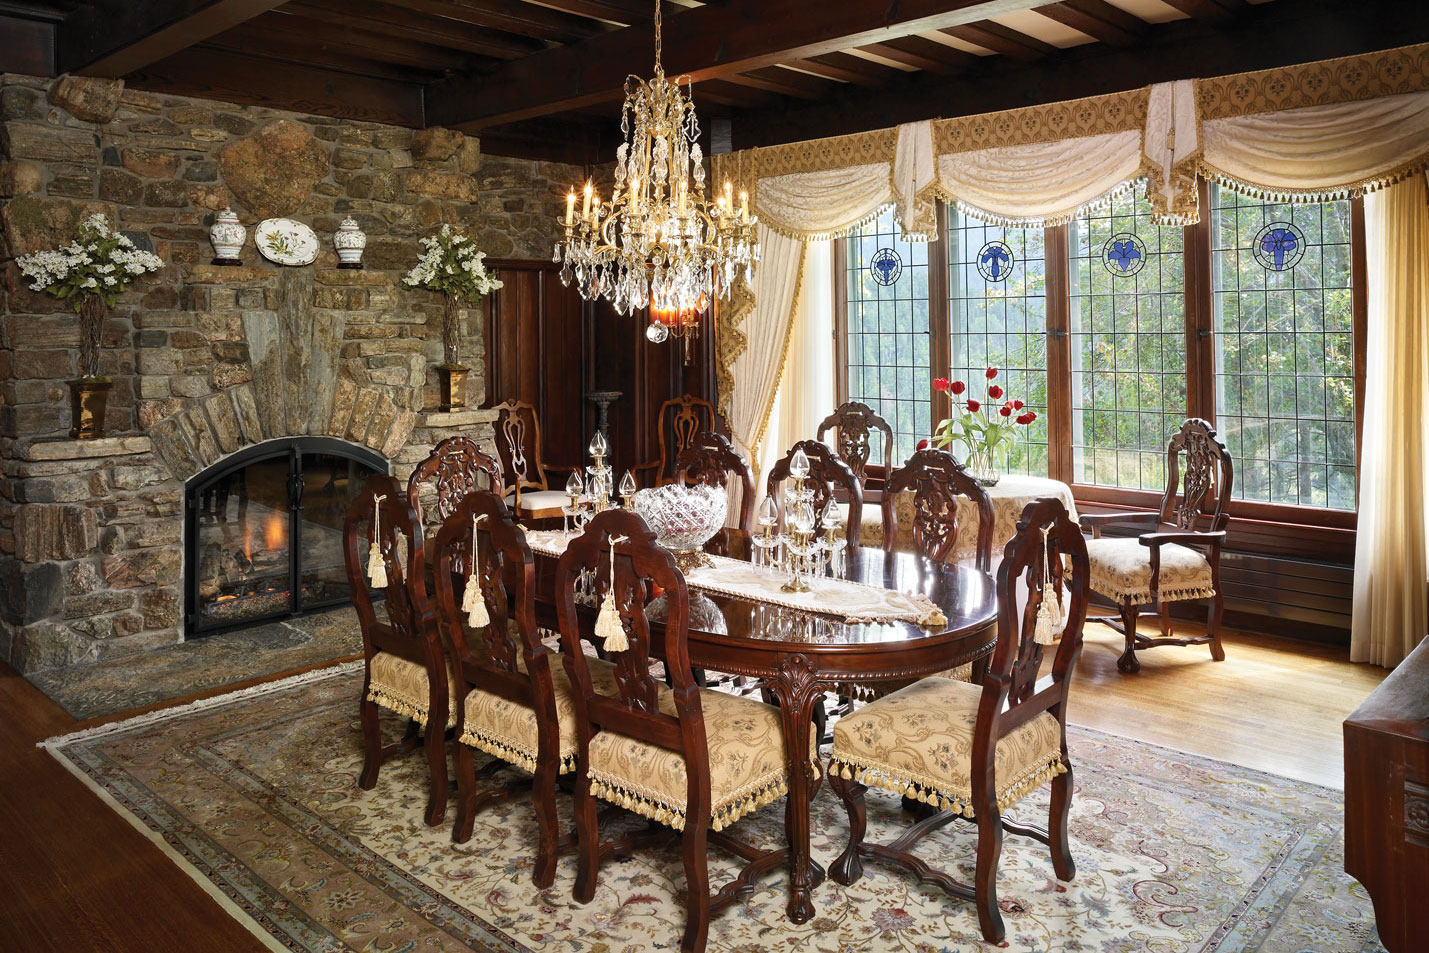 Manor House formal dining room present day.